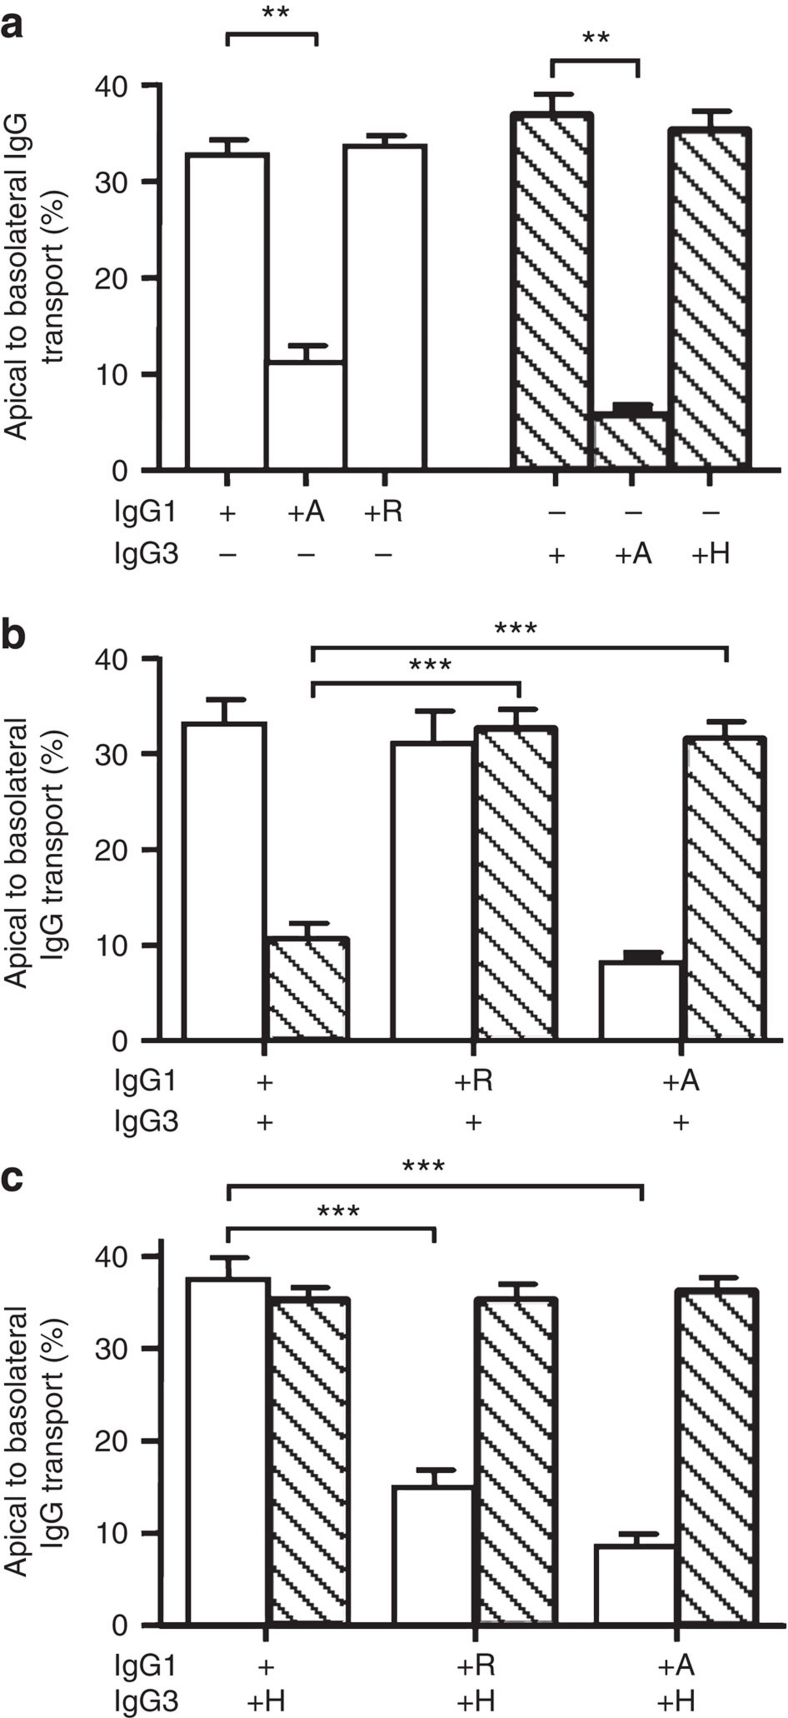 Inhibition of IgG3 transport by IgG1 is due to R435 in IgG3. ( a ) Mutating the amino acid at position 435 in IgG1 (H435) and in IgG3 (R435) to an alanine reduces transport, while exchanging the histidine native to IgG1 and the arginine native to IgG3 on each others backbone had no effect on their transport rate when offered separately to FcRn-transfected A375 cells. ( b ) Whereas transport of IgG3-WT was inhibited in the presence of IgG1-WT, IgG1 bearing an alanine or an arginine at position 435 had no effect on IgG3 transport. ( c ) Transport of IgG3 with a histidine at position 435 was not inhibited by WT IgG1. When the amino acids found at position 435 in IgG1 and IgG3 were swapped, IgG1–H435R transport was inhibited by IgG3–R435H. ( a – c ) ± indicate the presence or absence of IgG (10 μg ml −1 per subclass), IgG1 is represented by open bars, IgG3 by hatched bars. The presence of mutated variants (435H, 435A and 435R) is indicated by the corresponding letter. The data represent mean and standard deviation from three independent experiments. Transport of WT IgG was compared with transport of mutant IgG by one-way ANOVA with Dunnett's multiple comparison test and significance. ** P ≤0.01; *** P ≤0.001.